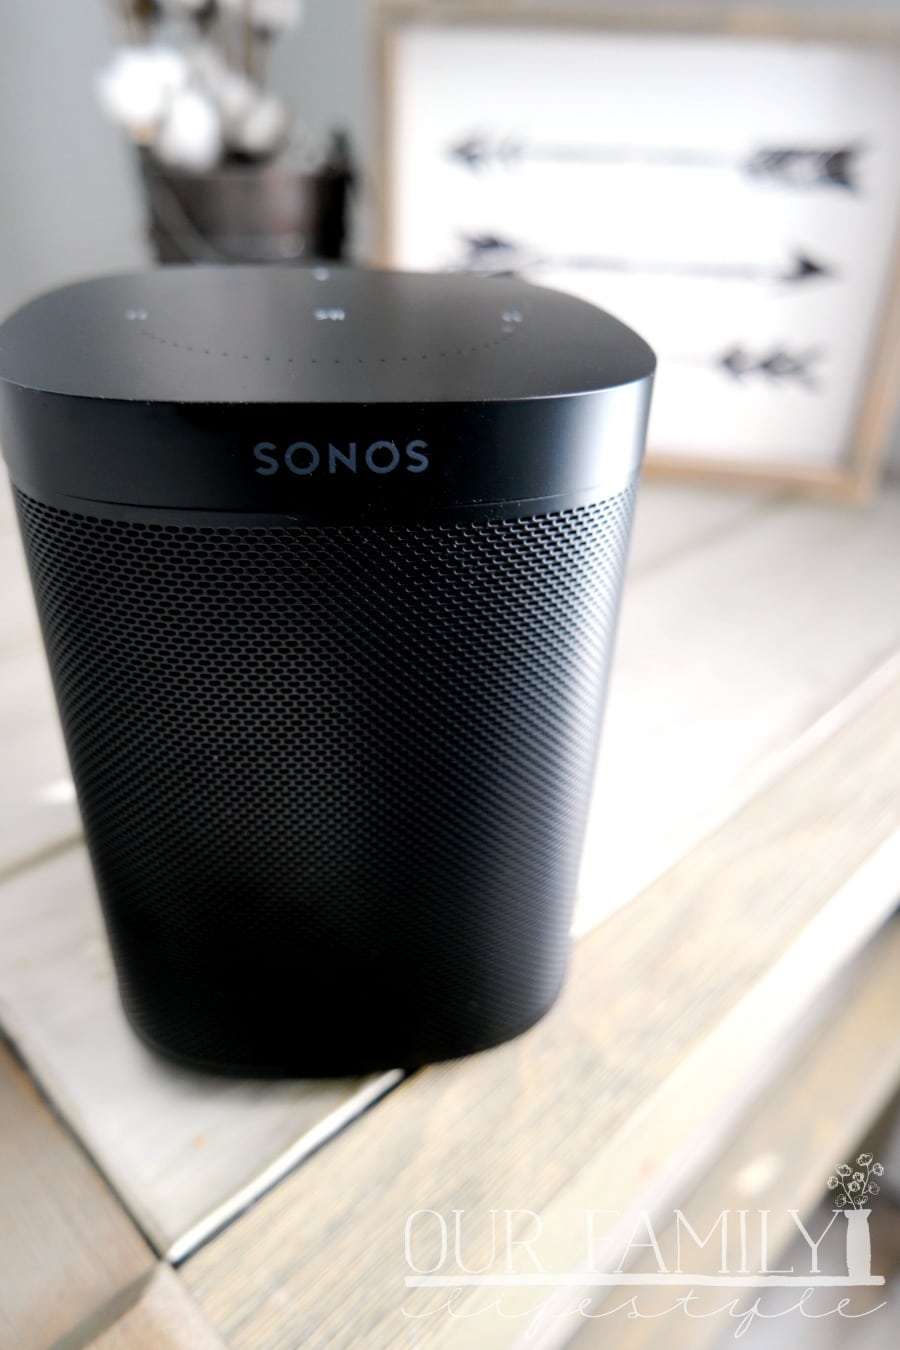 Sonos One available at Best Buy